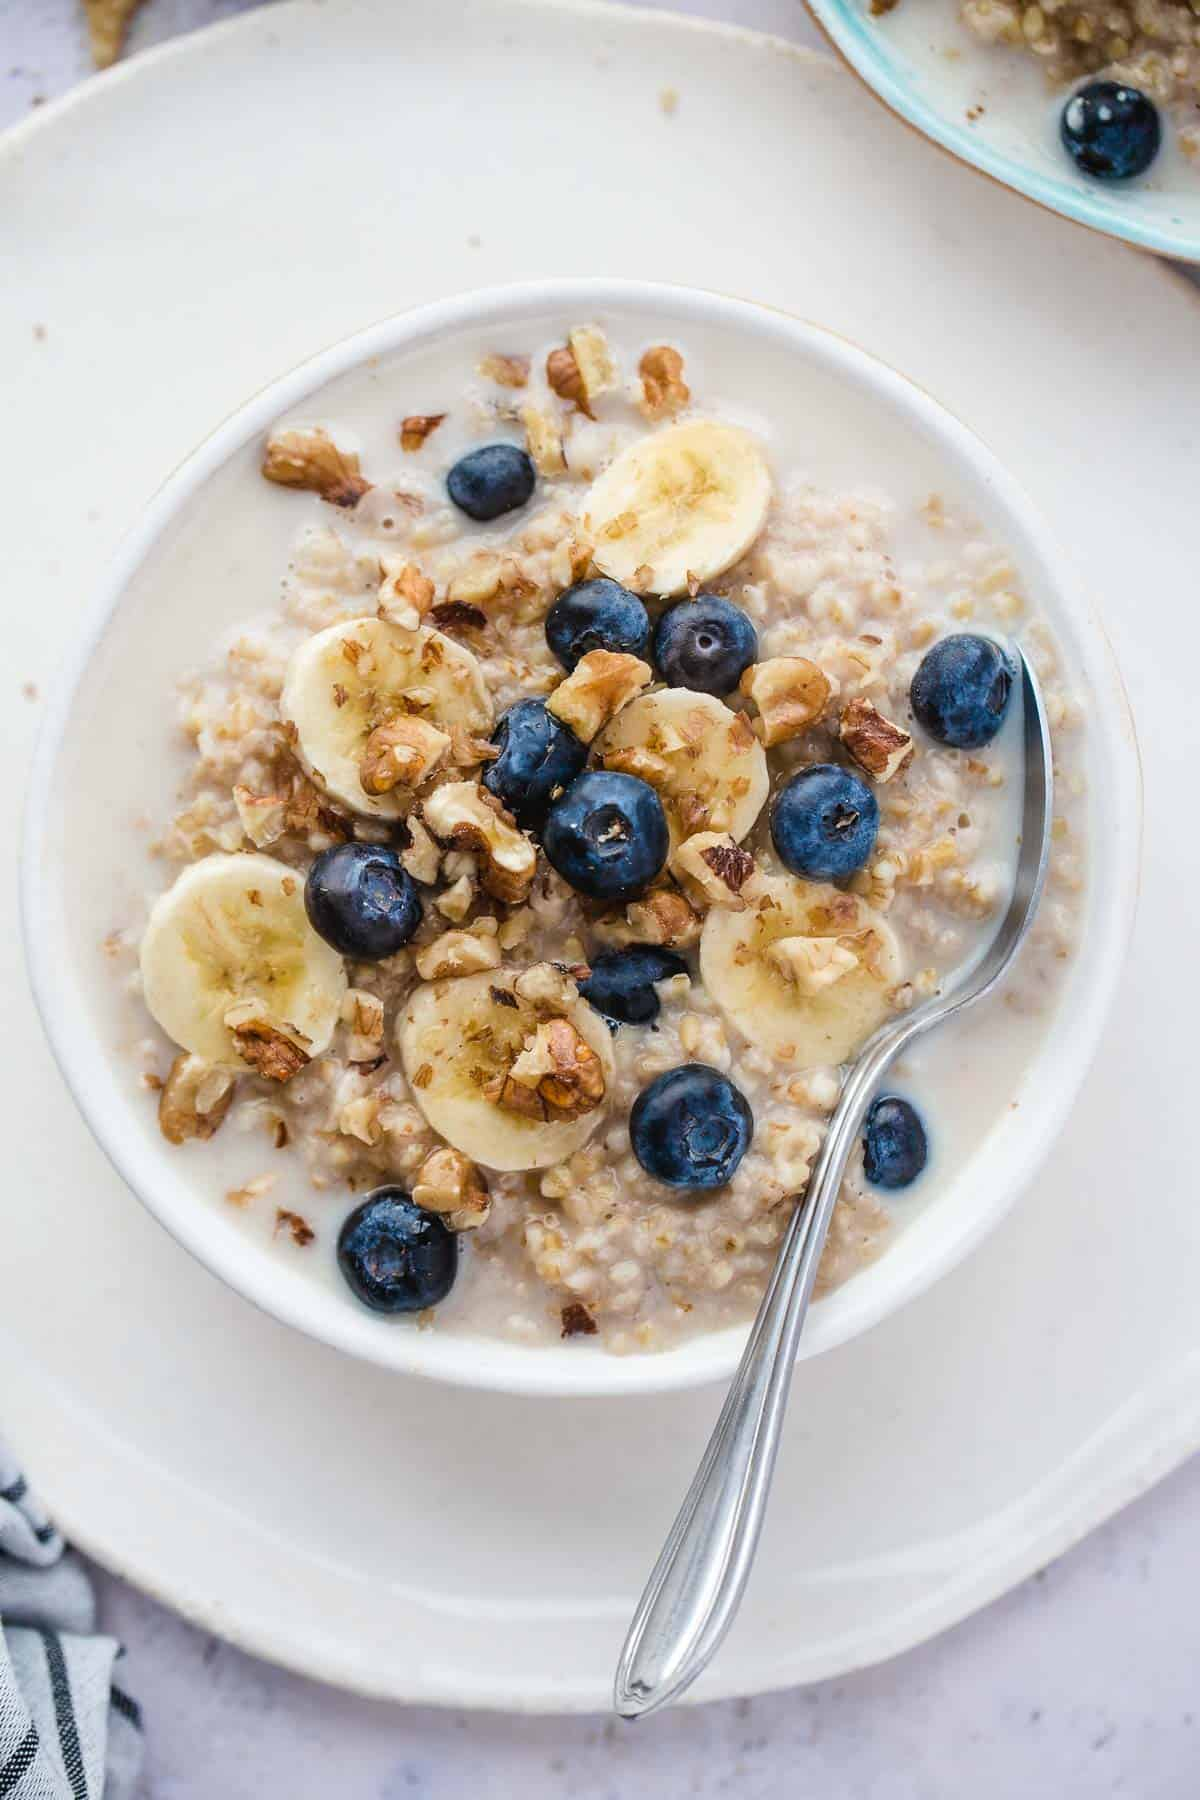 Oatmeal served in a white bowl topped with bananas, blackberries and walnuts